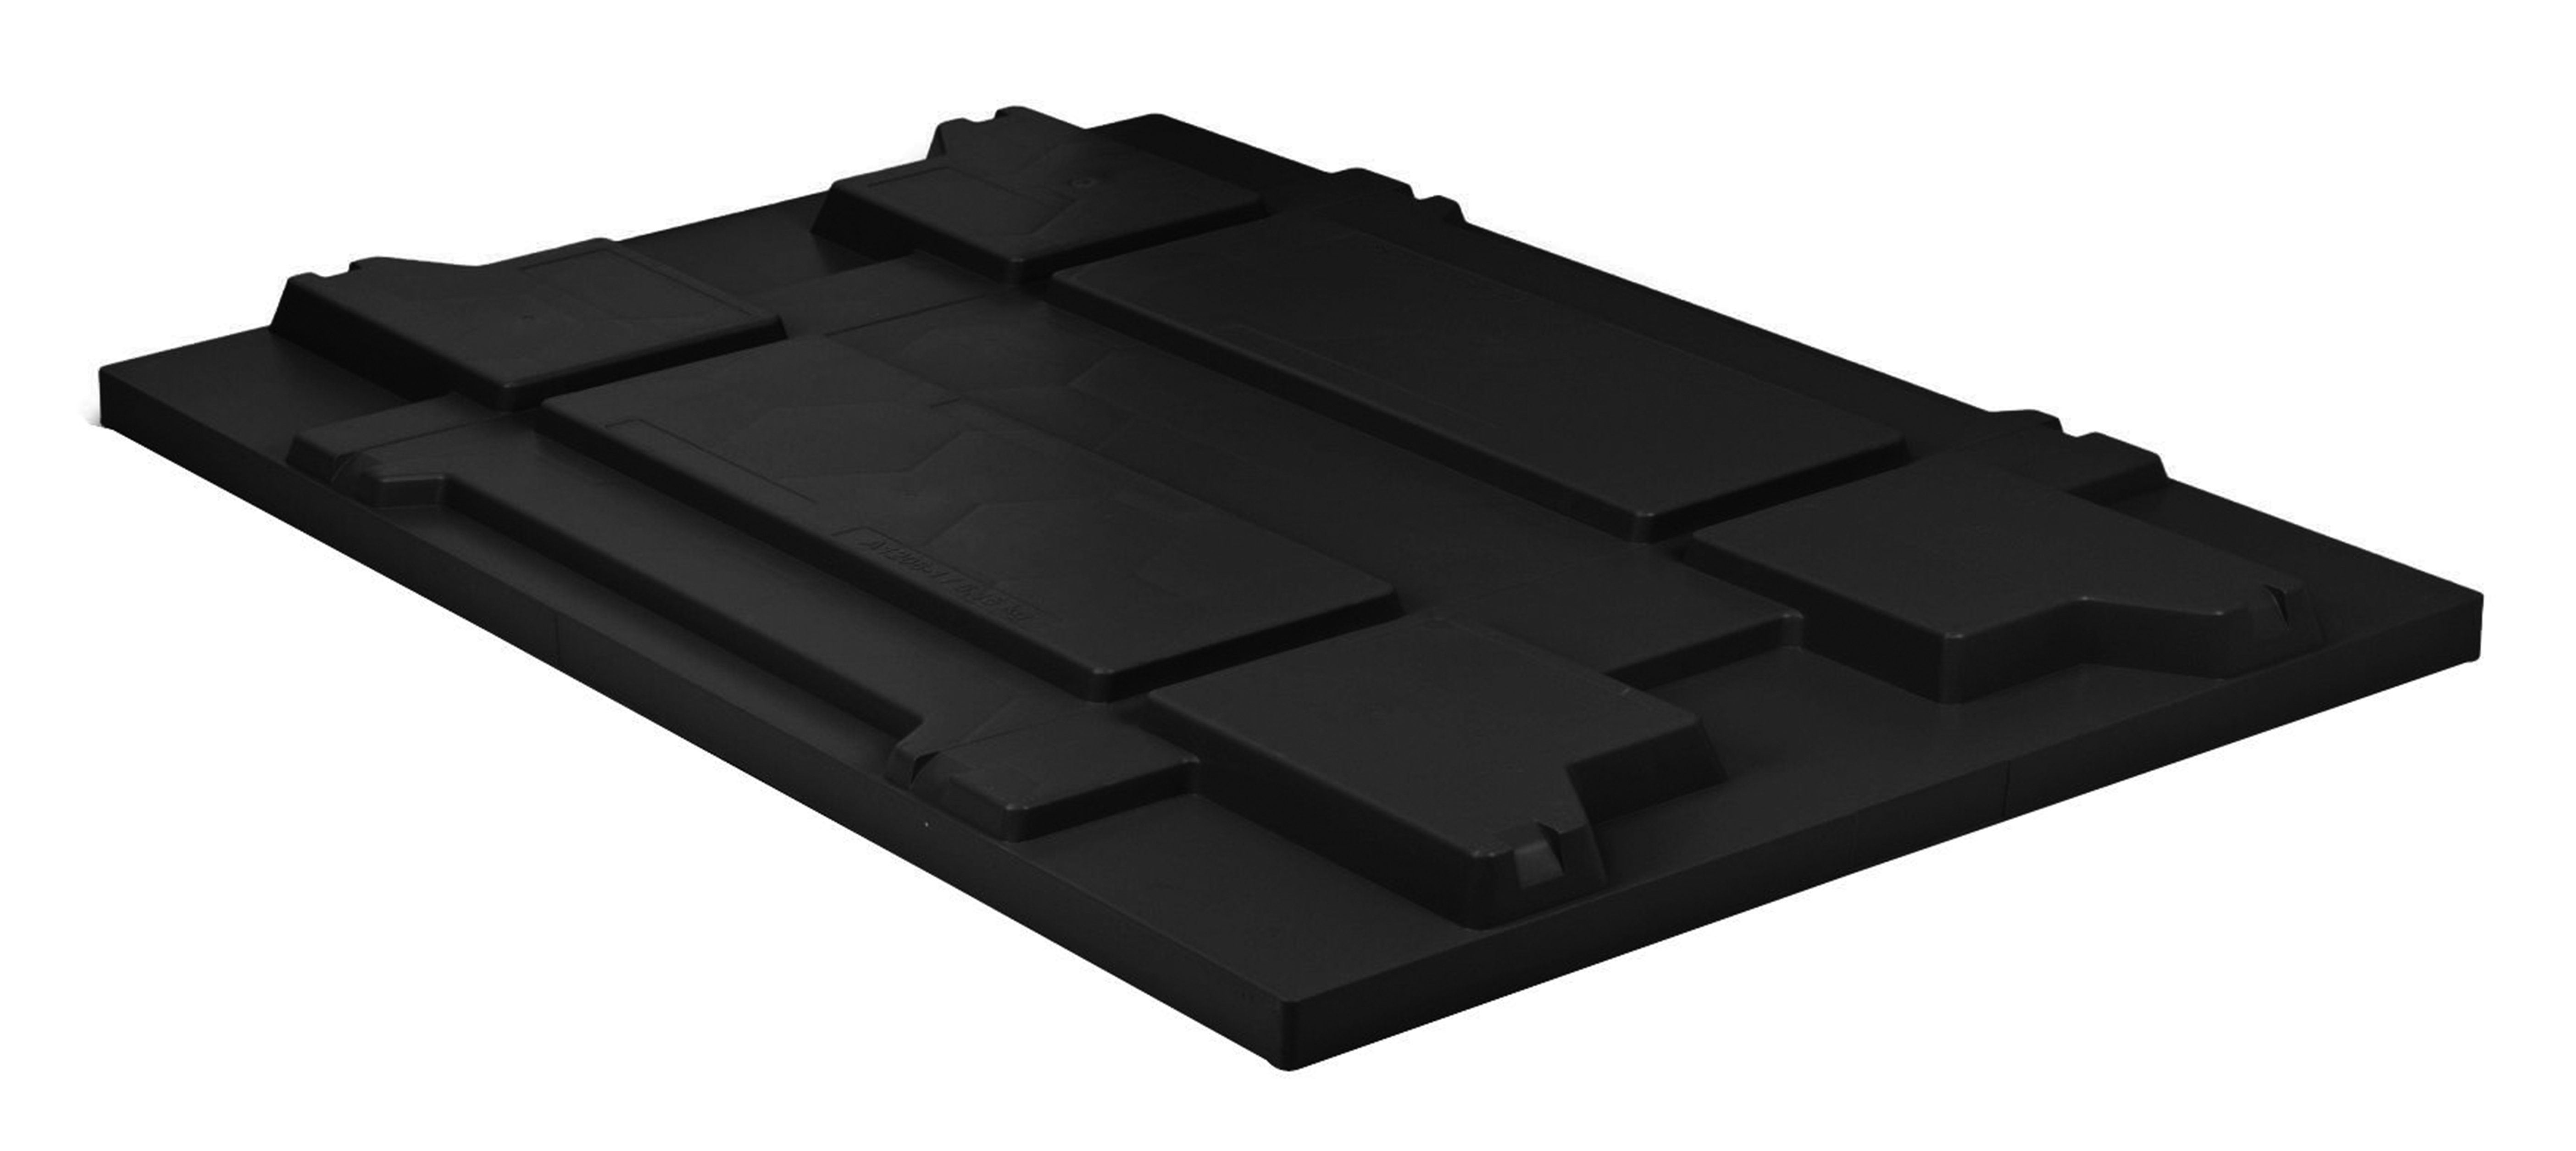 esd-safe lids for KLTs / small load carriers